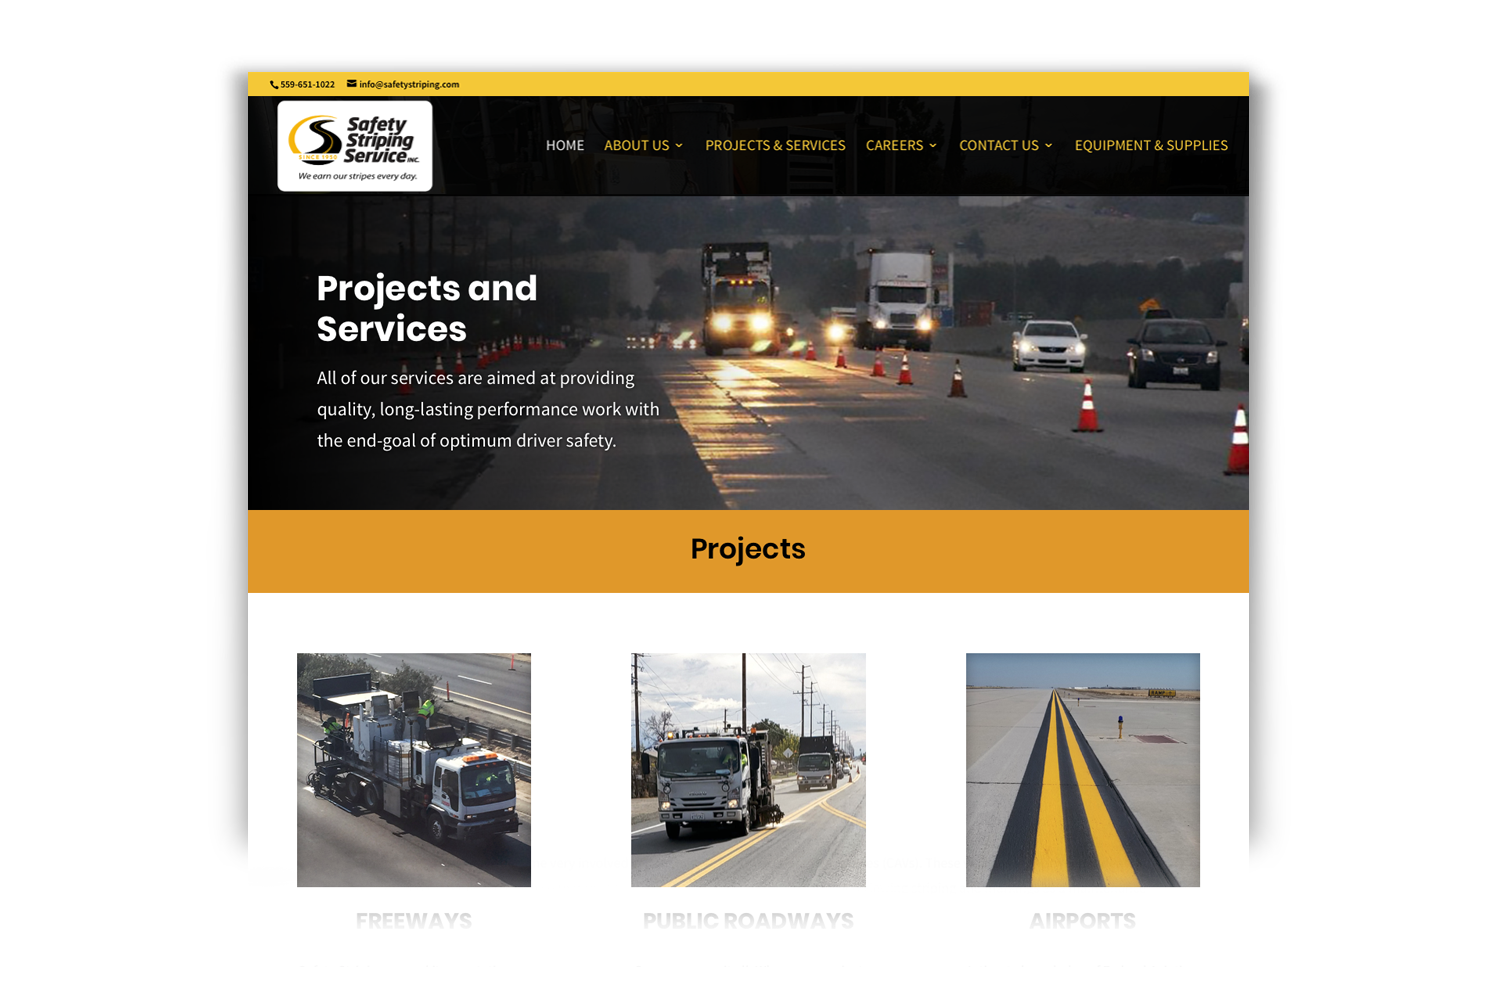 Safety Striping Service Website, Projects page by DMI Agency_branding update and new website